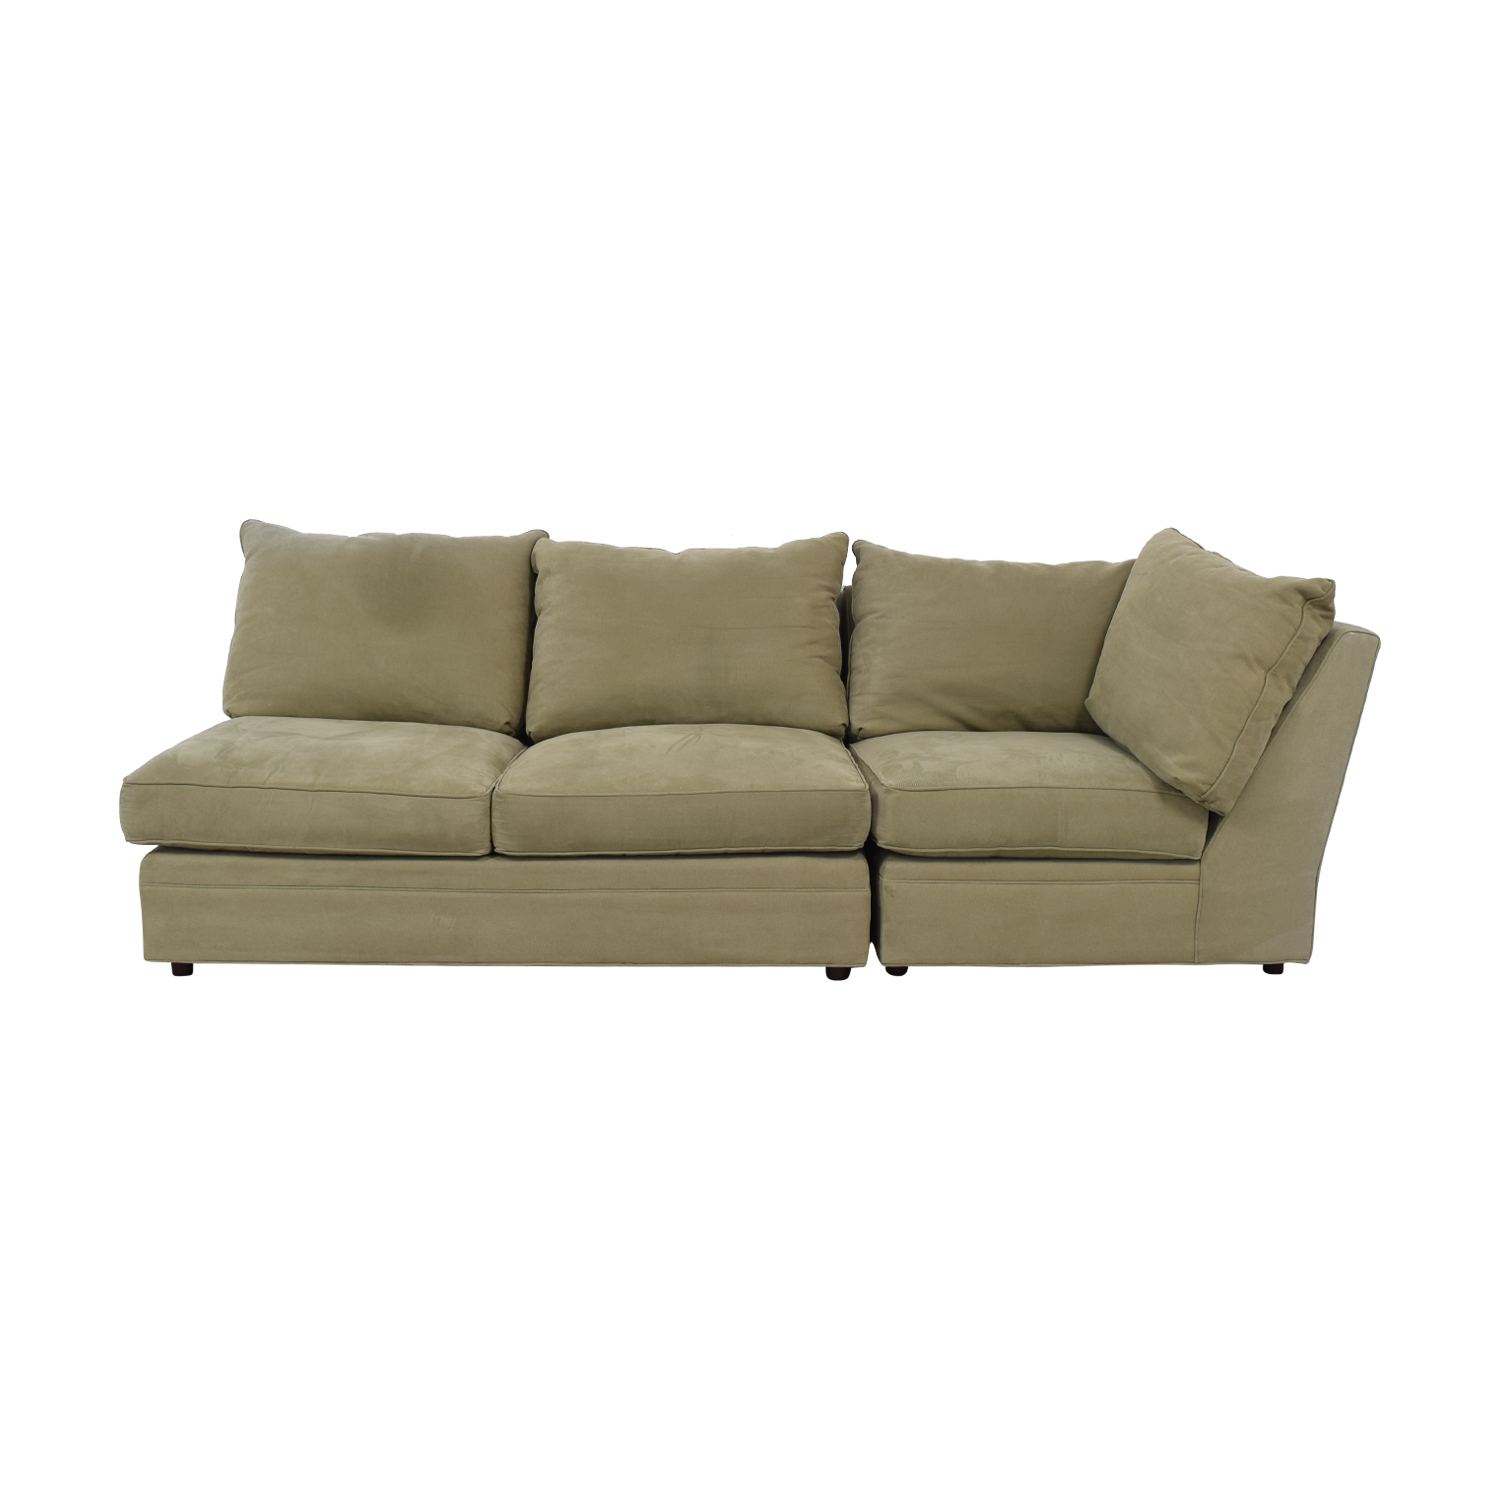 Macy's Beige Right Facing Arm Two-Piece Sofa / Sofas